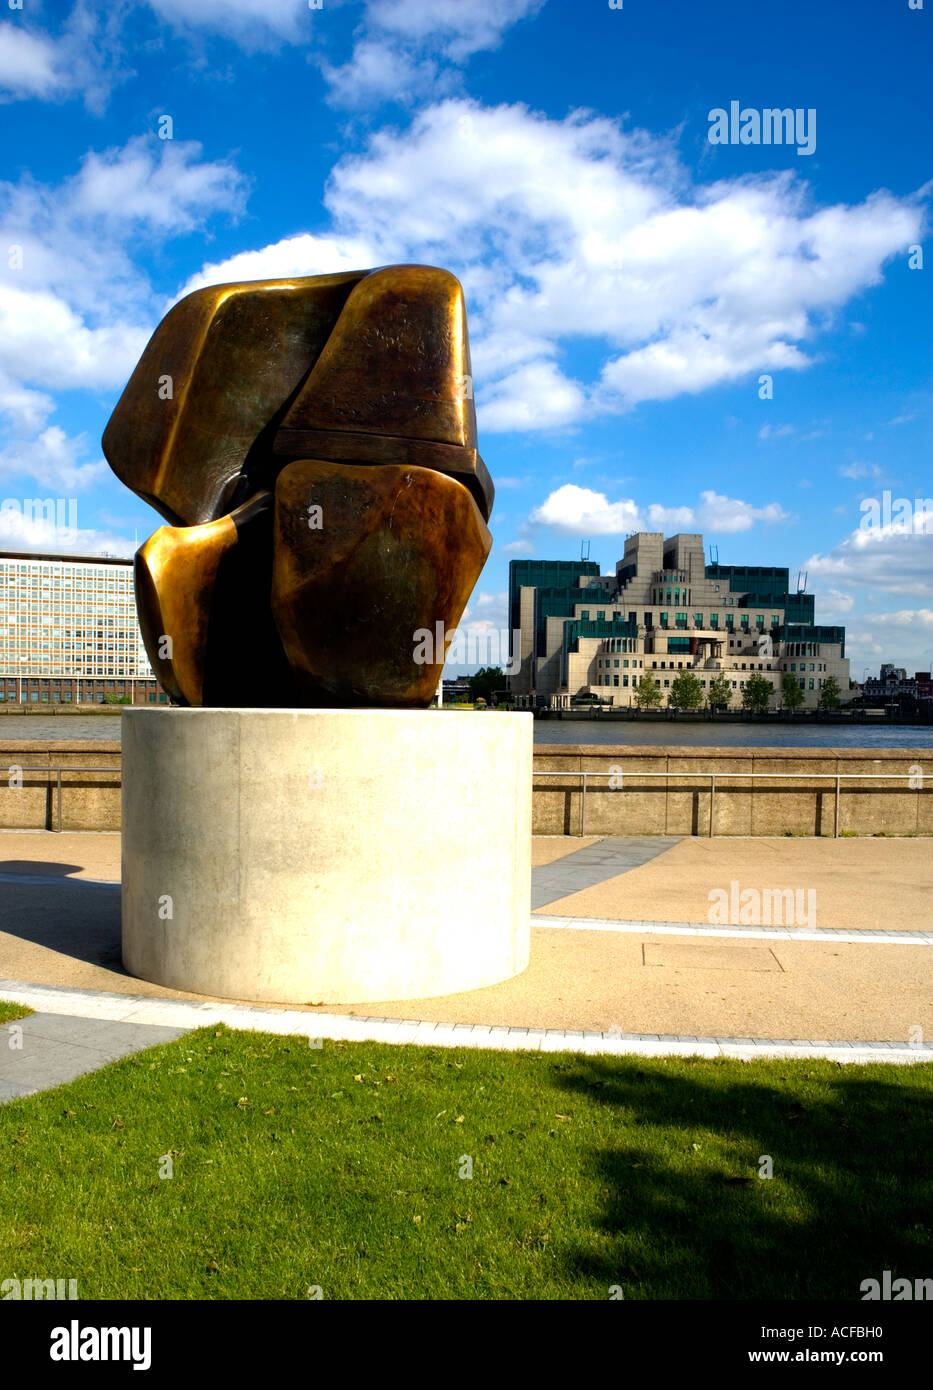 """Sir Henry Moore's Sculpture """"Locking Piece"""" on Millbank, London. MI6 HQ in distance. Stock Photo"""